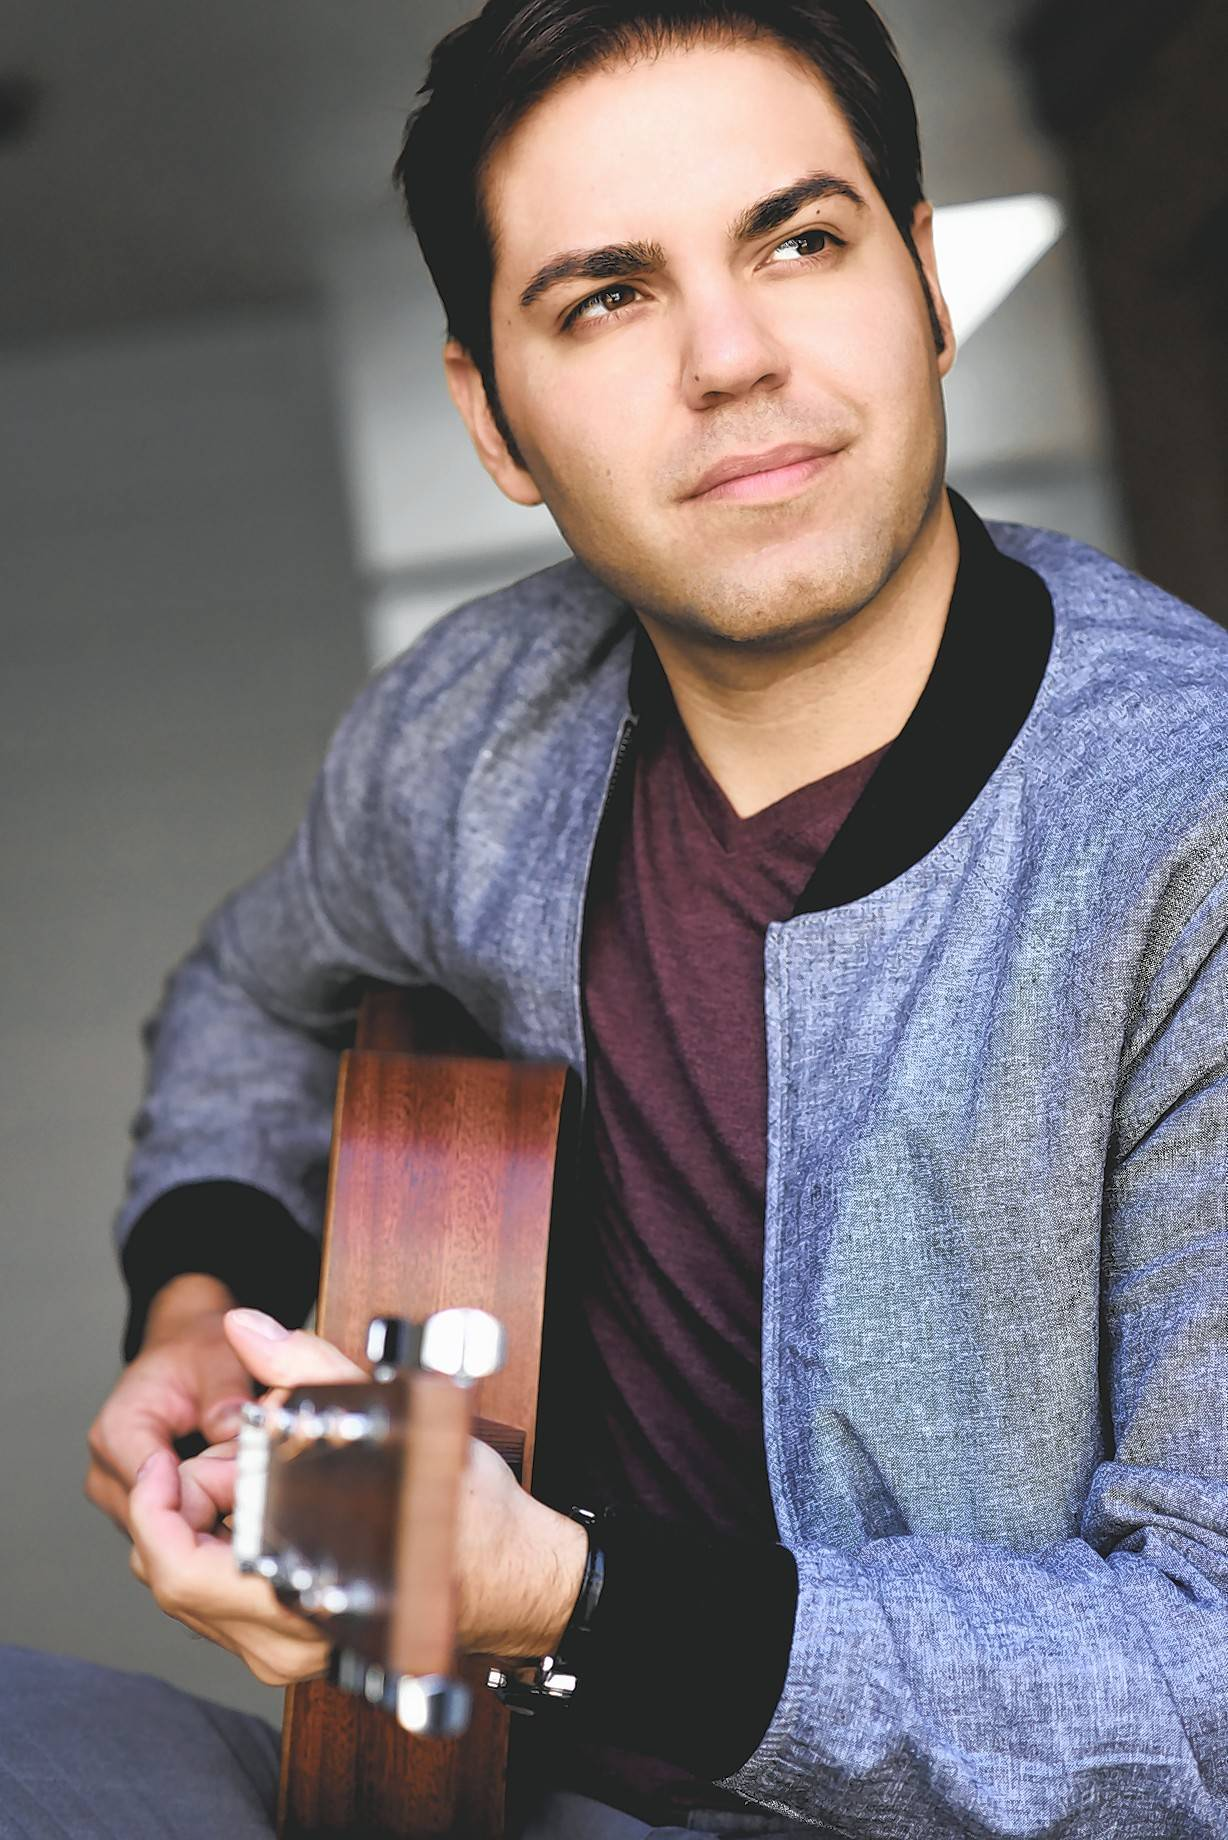 Country artist Andrew Salgado returns home for an album release party at Shanahan's in Woodridge Friday, Feb. 9.